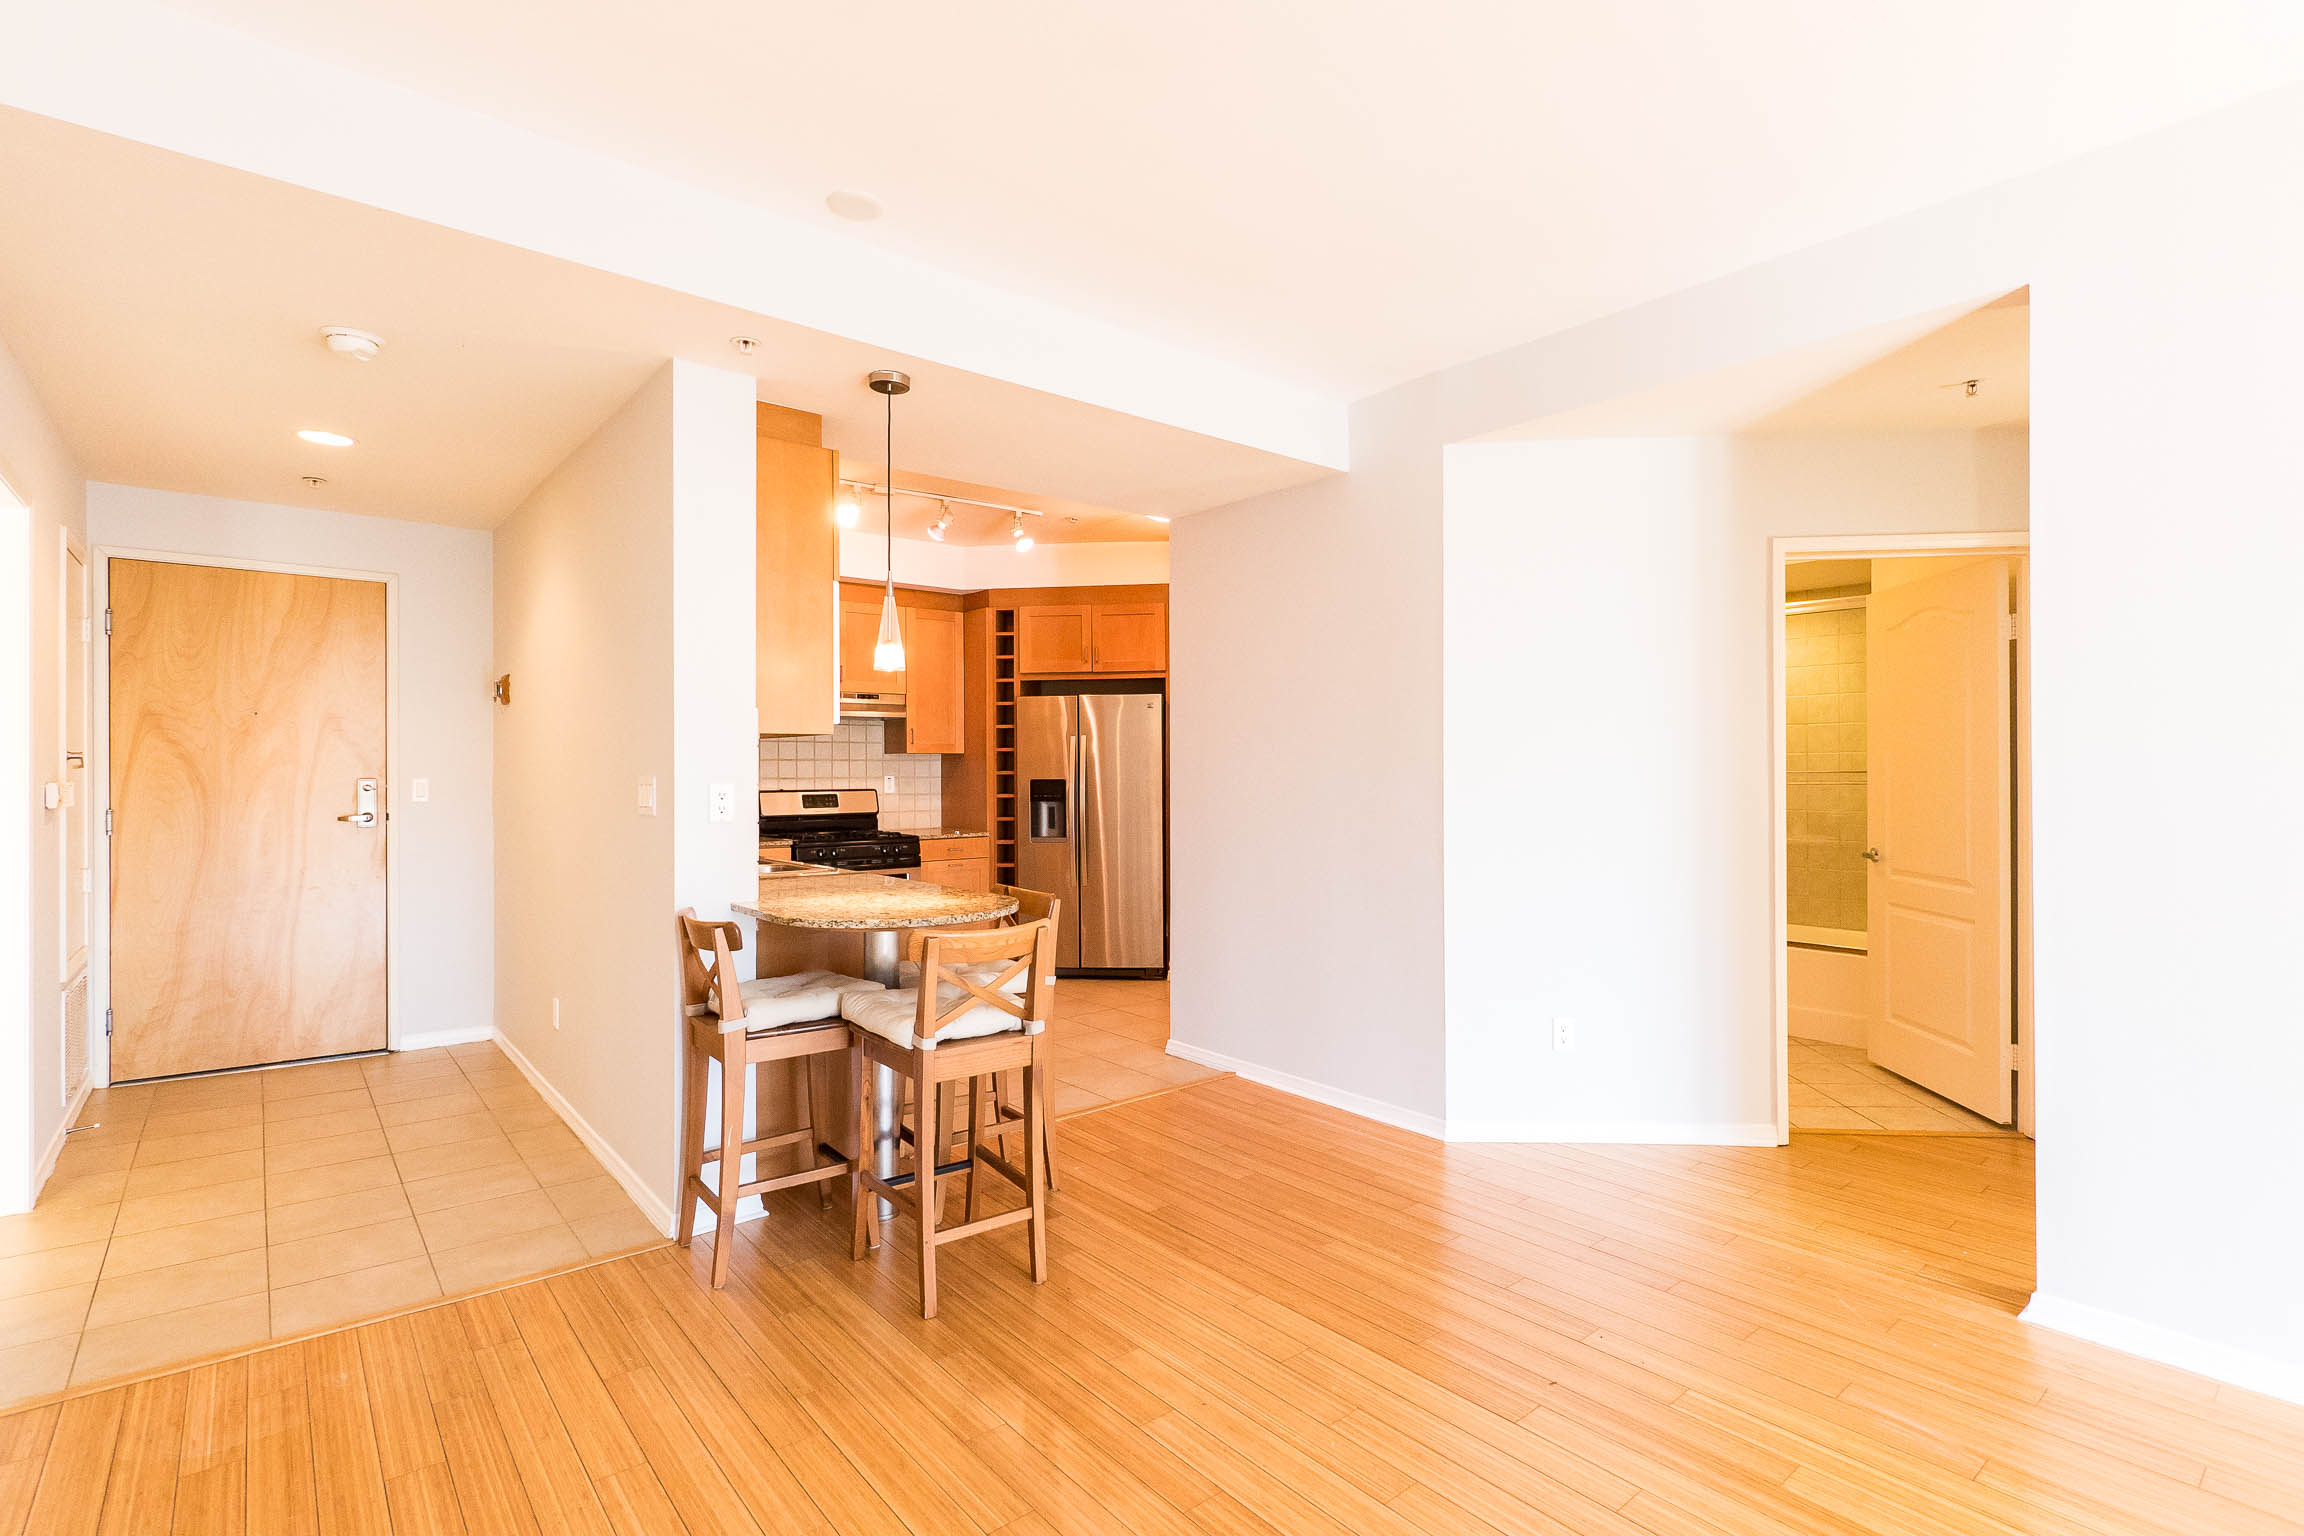 Large Sun-Splashed 2BD/2BA with Private Balcony in Luxury Condo Building